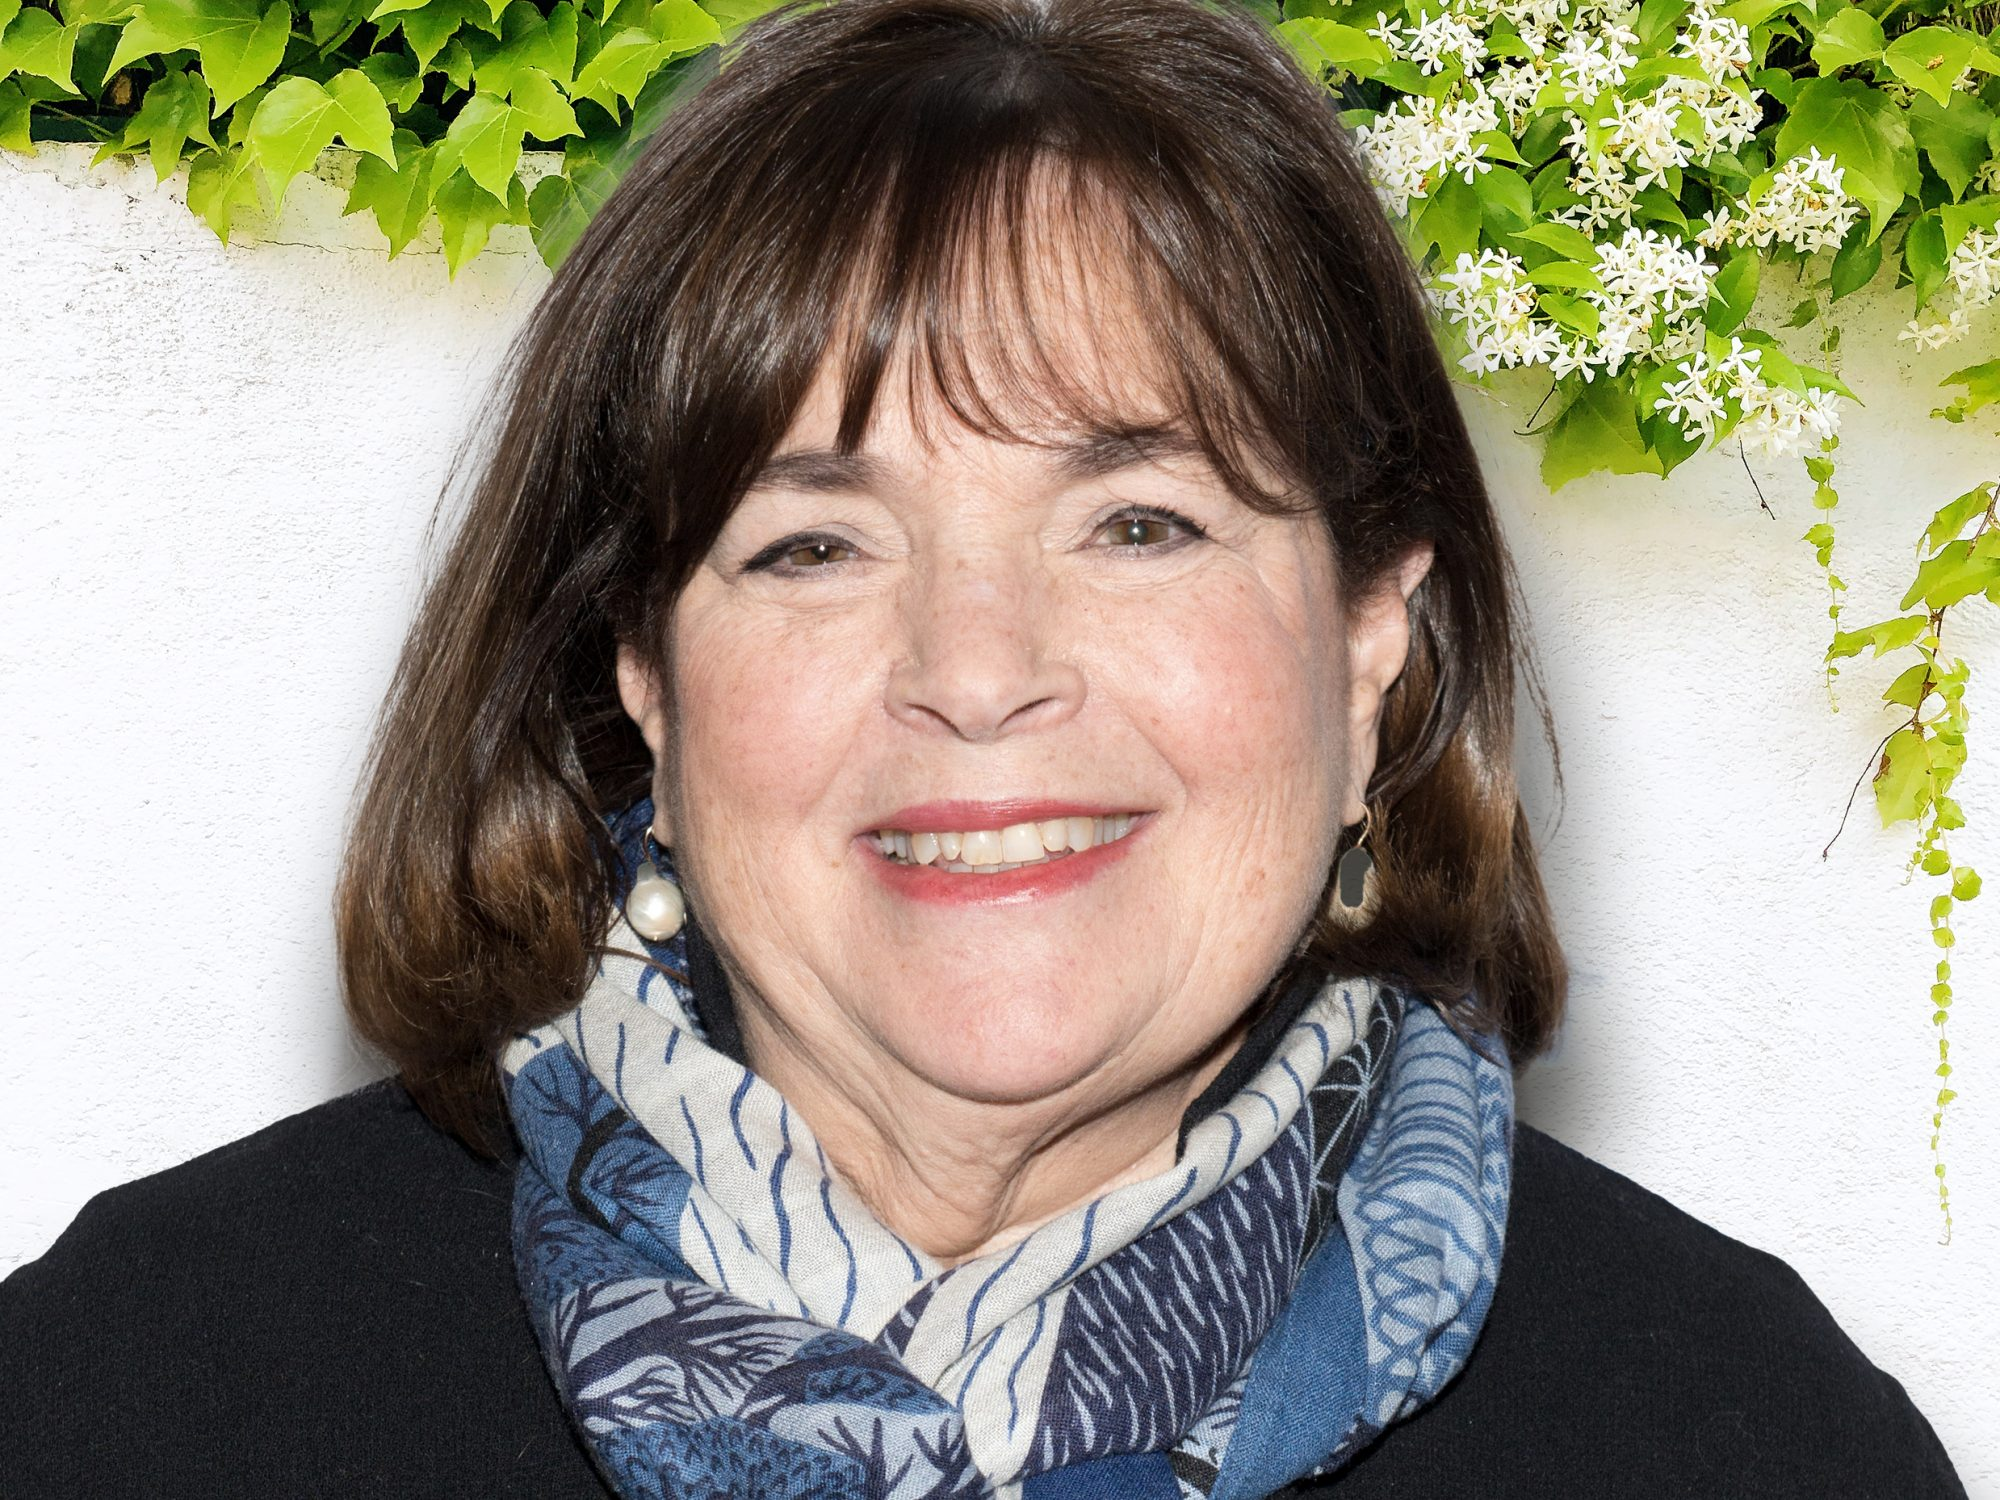 Ina Garten Shares a Sneak Peek Into Her Upcoming Cookbook—and It Looks Delicious